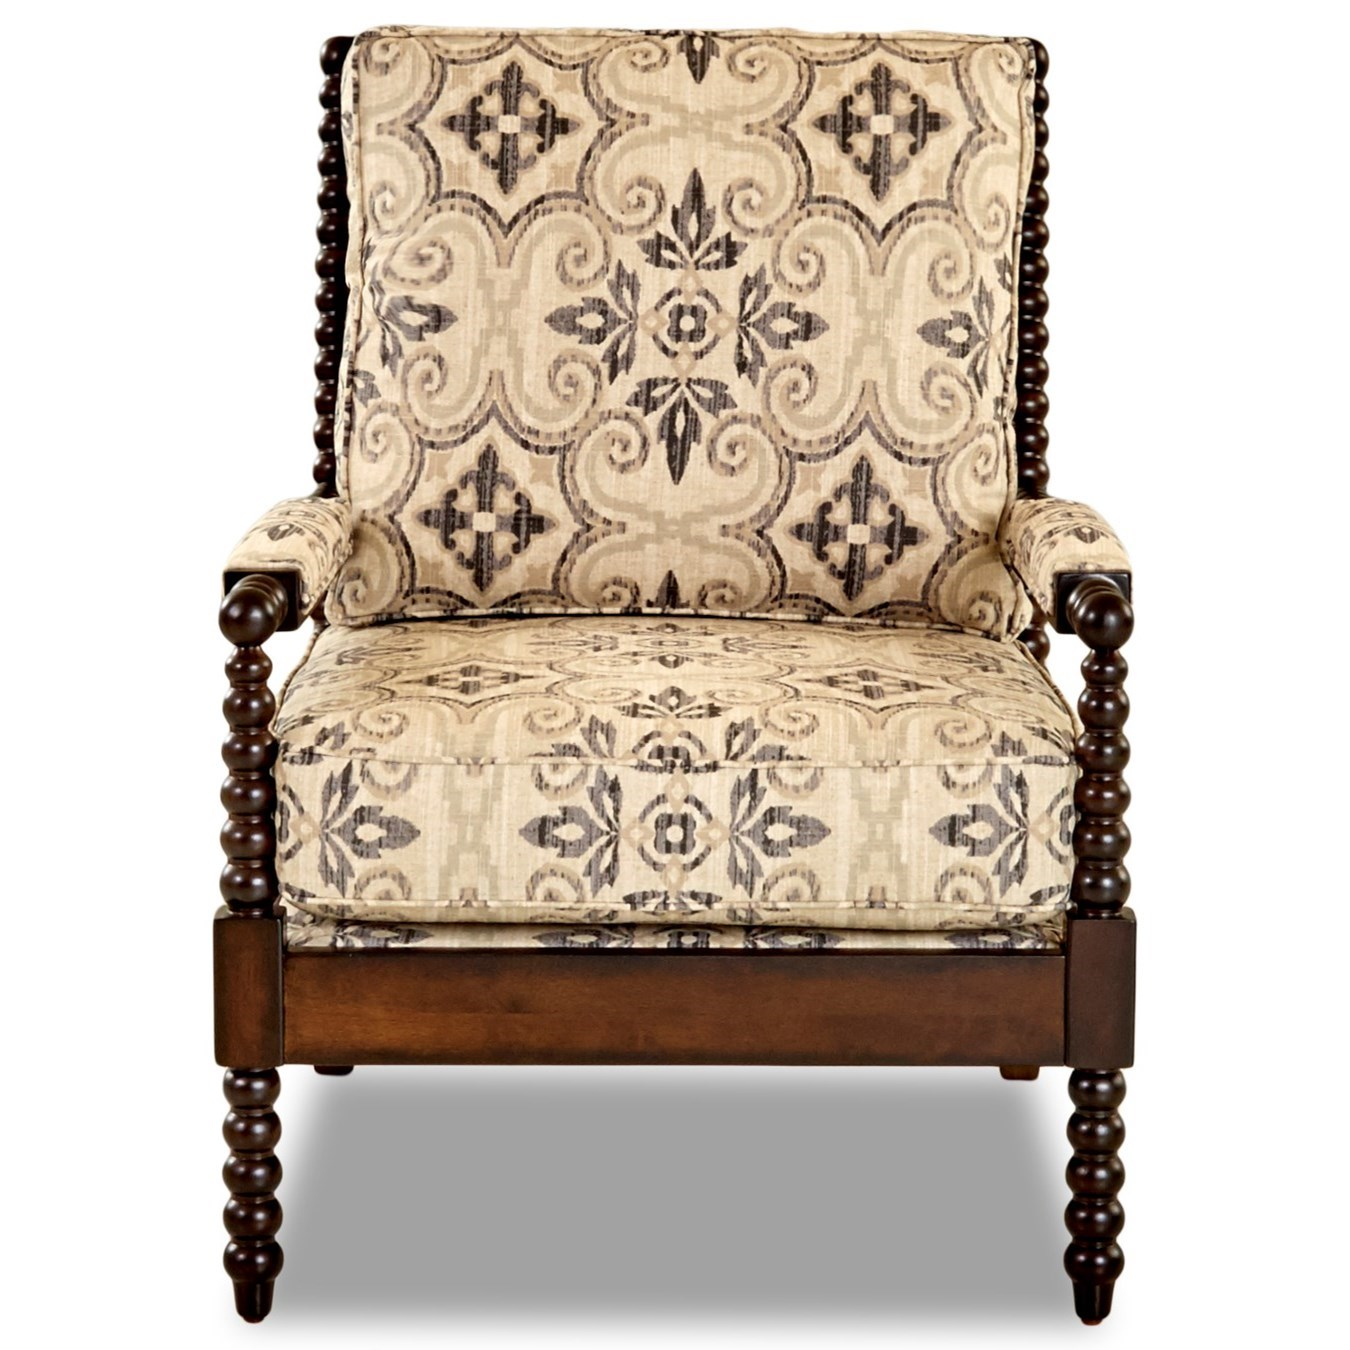 Chairs and Accents Rocco Accent Chair by Klaussner at Northeast Factory Direct